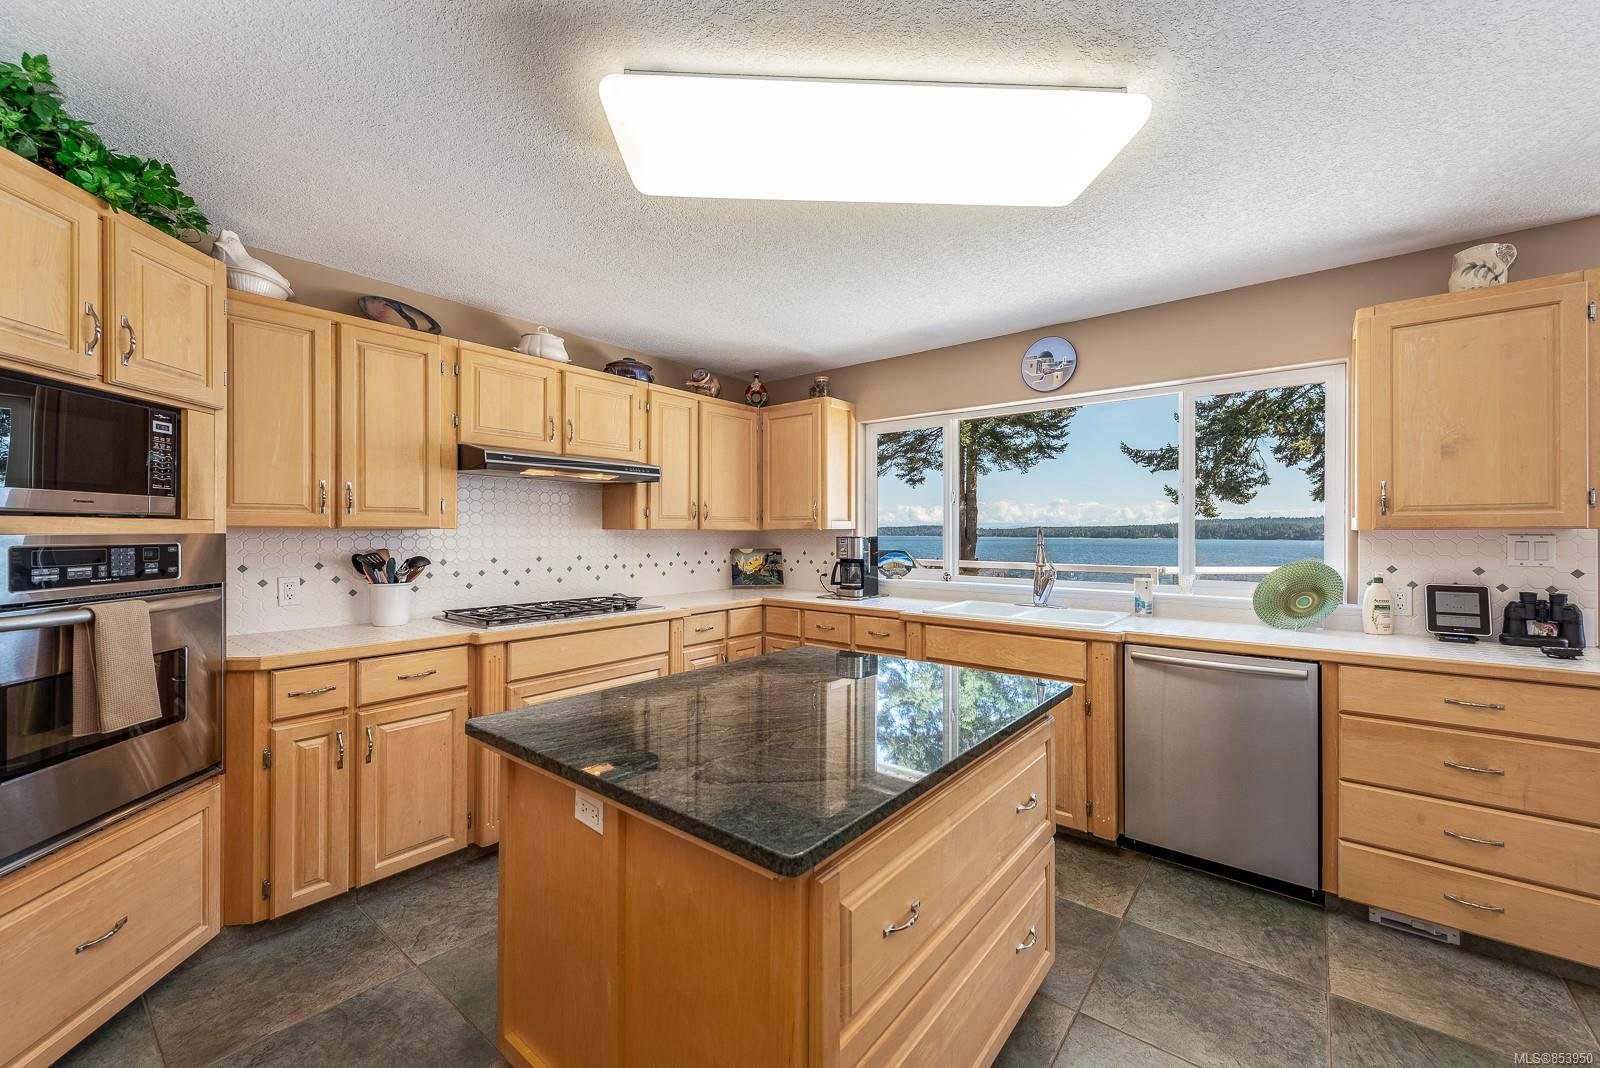 Photo 3: Photos: 5880 GARVIN Rd in : CV Union Bay/Fanny Bay House for sale (Comox Valley)  : MLS®# 853950